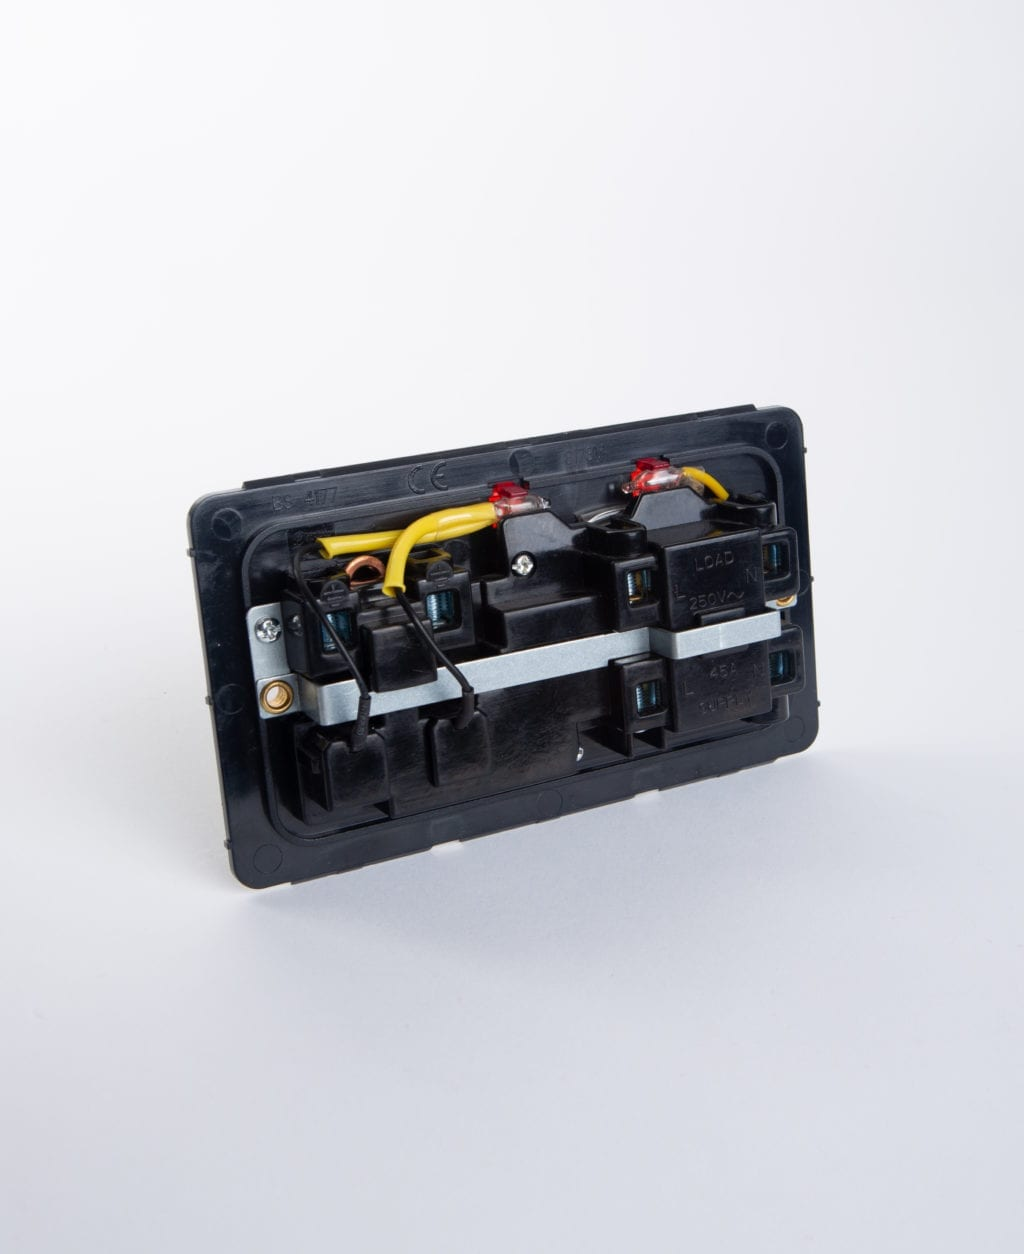 back view of 45 amp cooker isolator switch backplate against white background